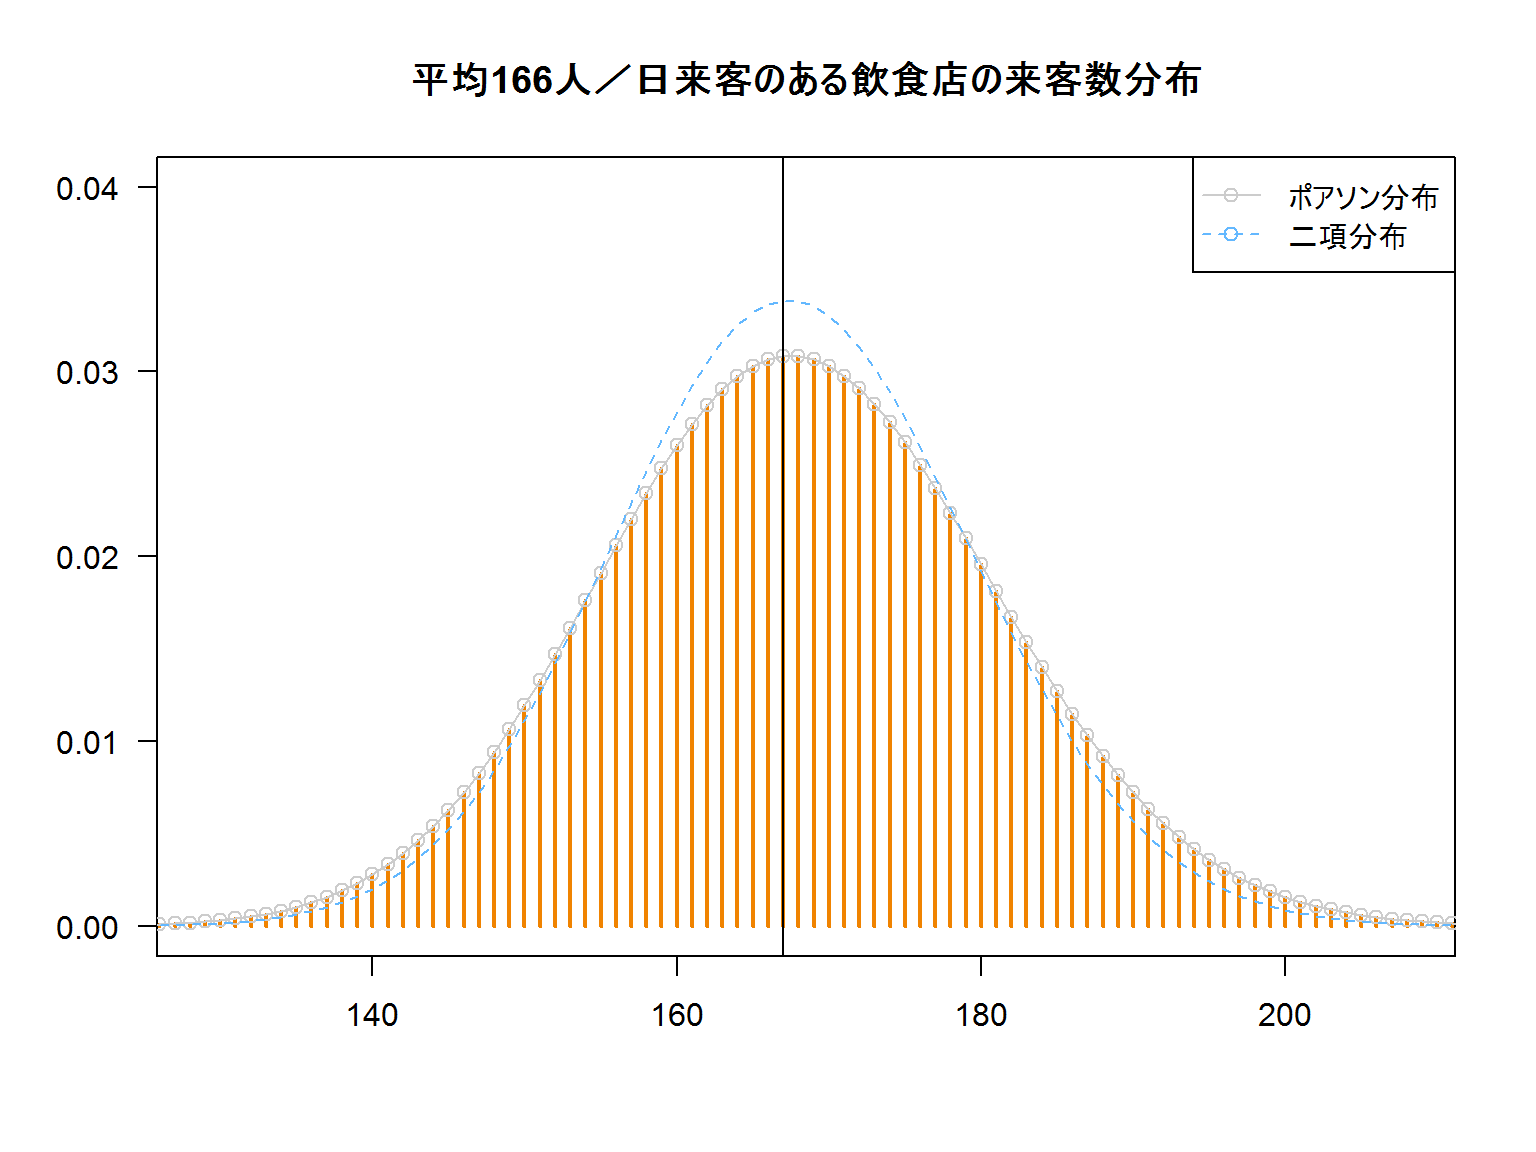 Poisson_distribution_2